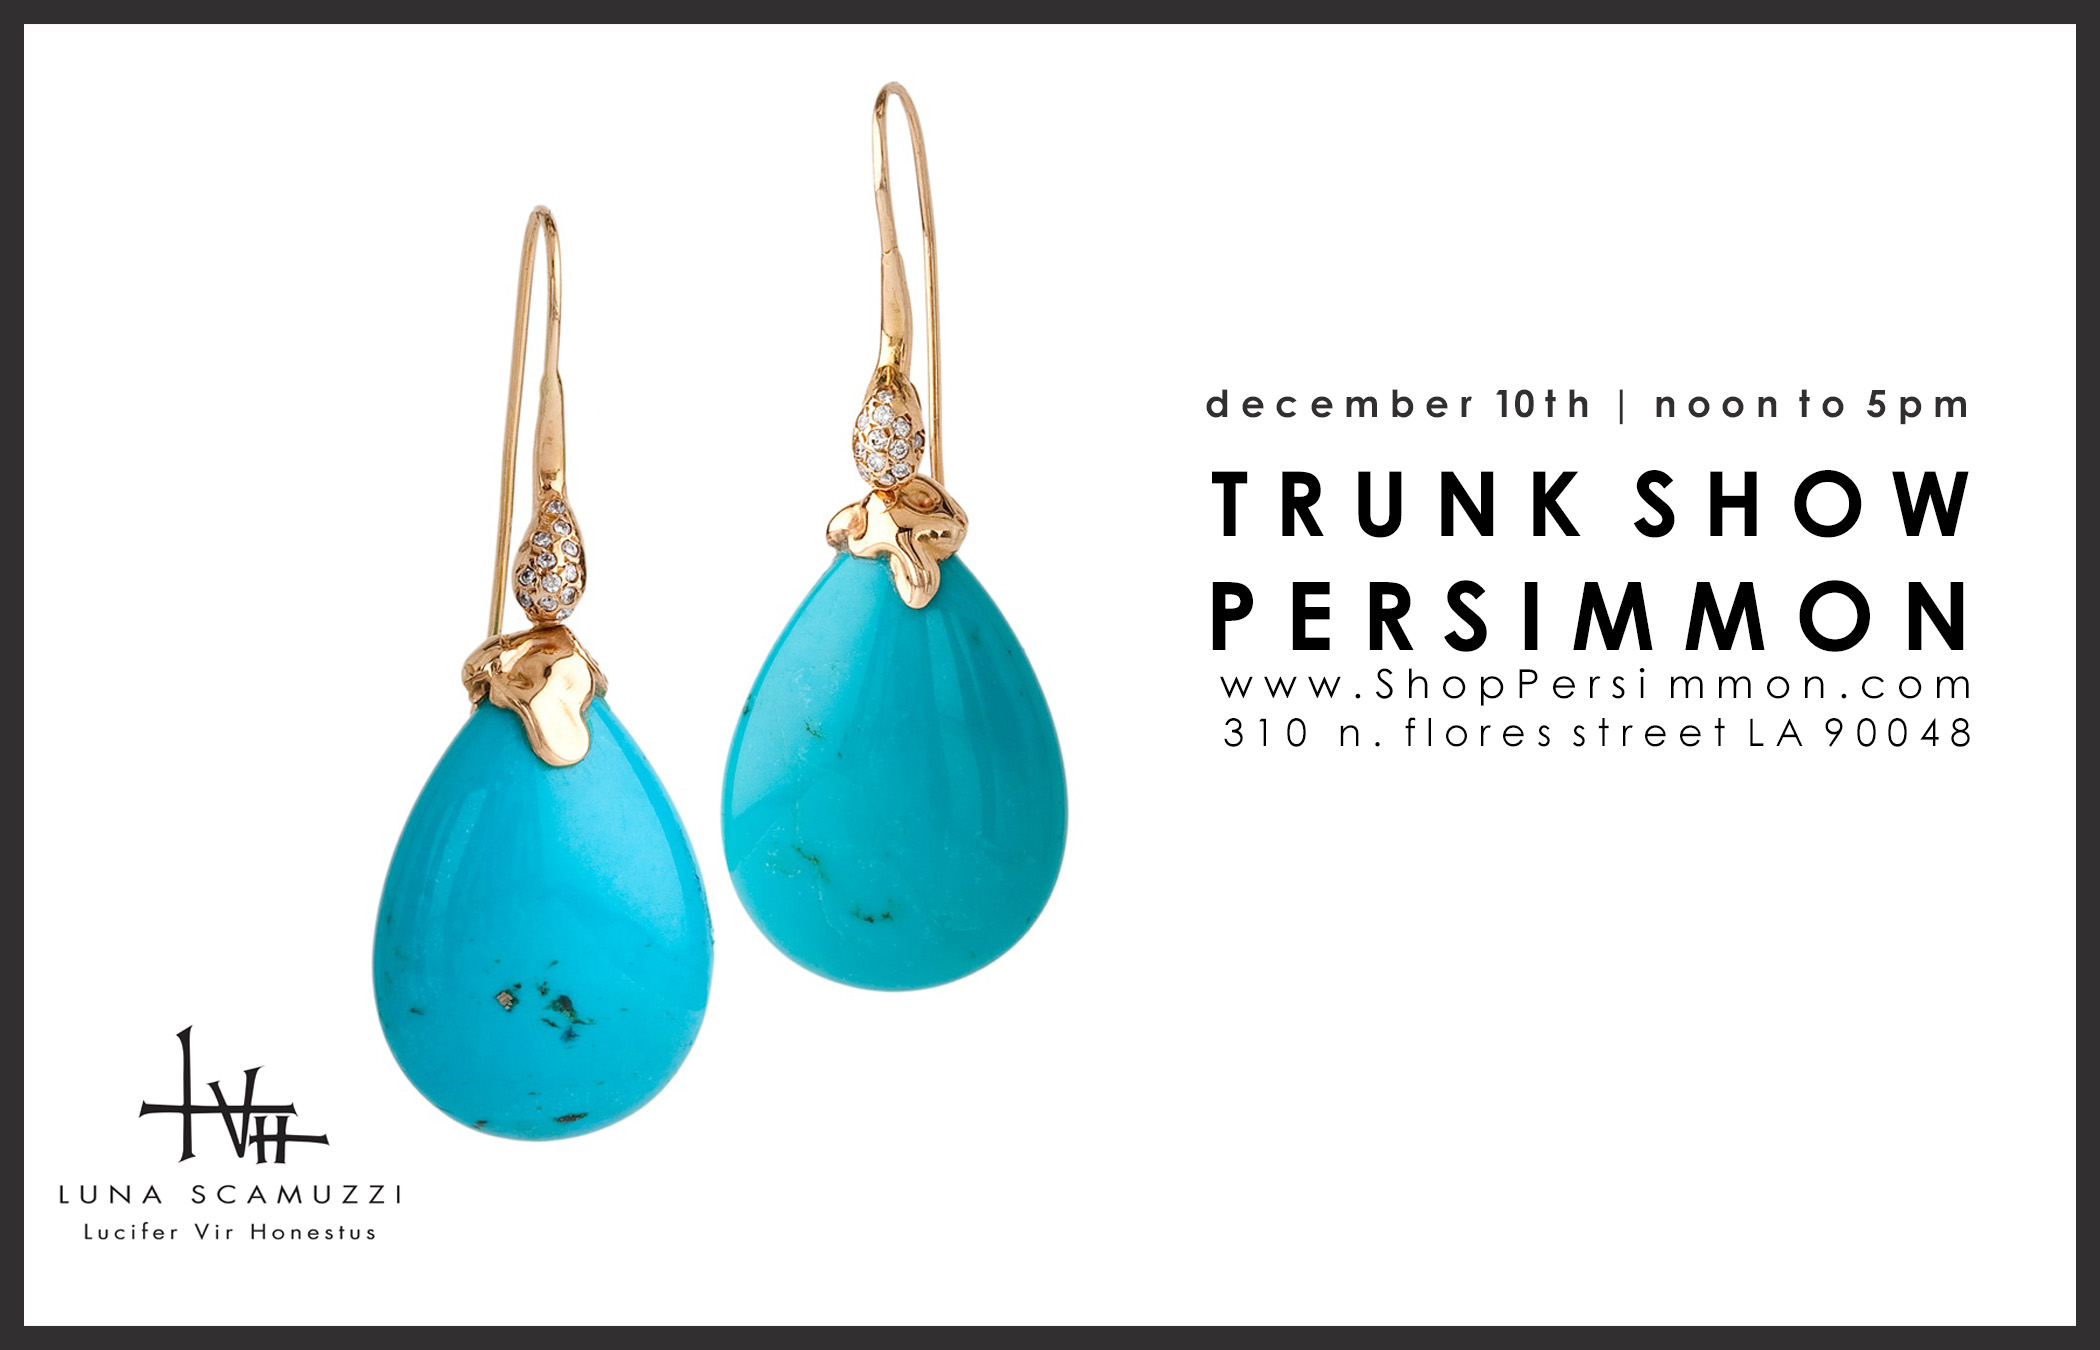 The Perfect Holiday Trunk Show